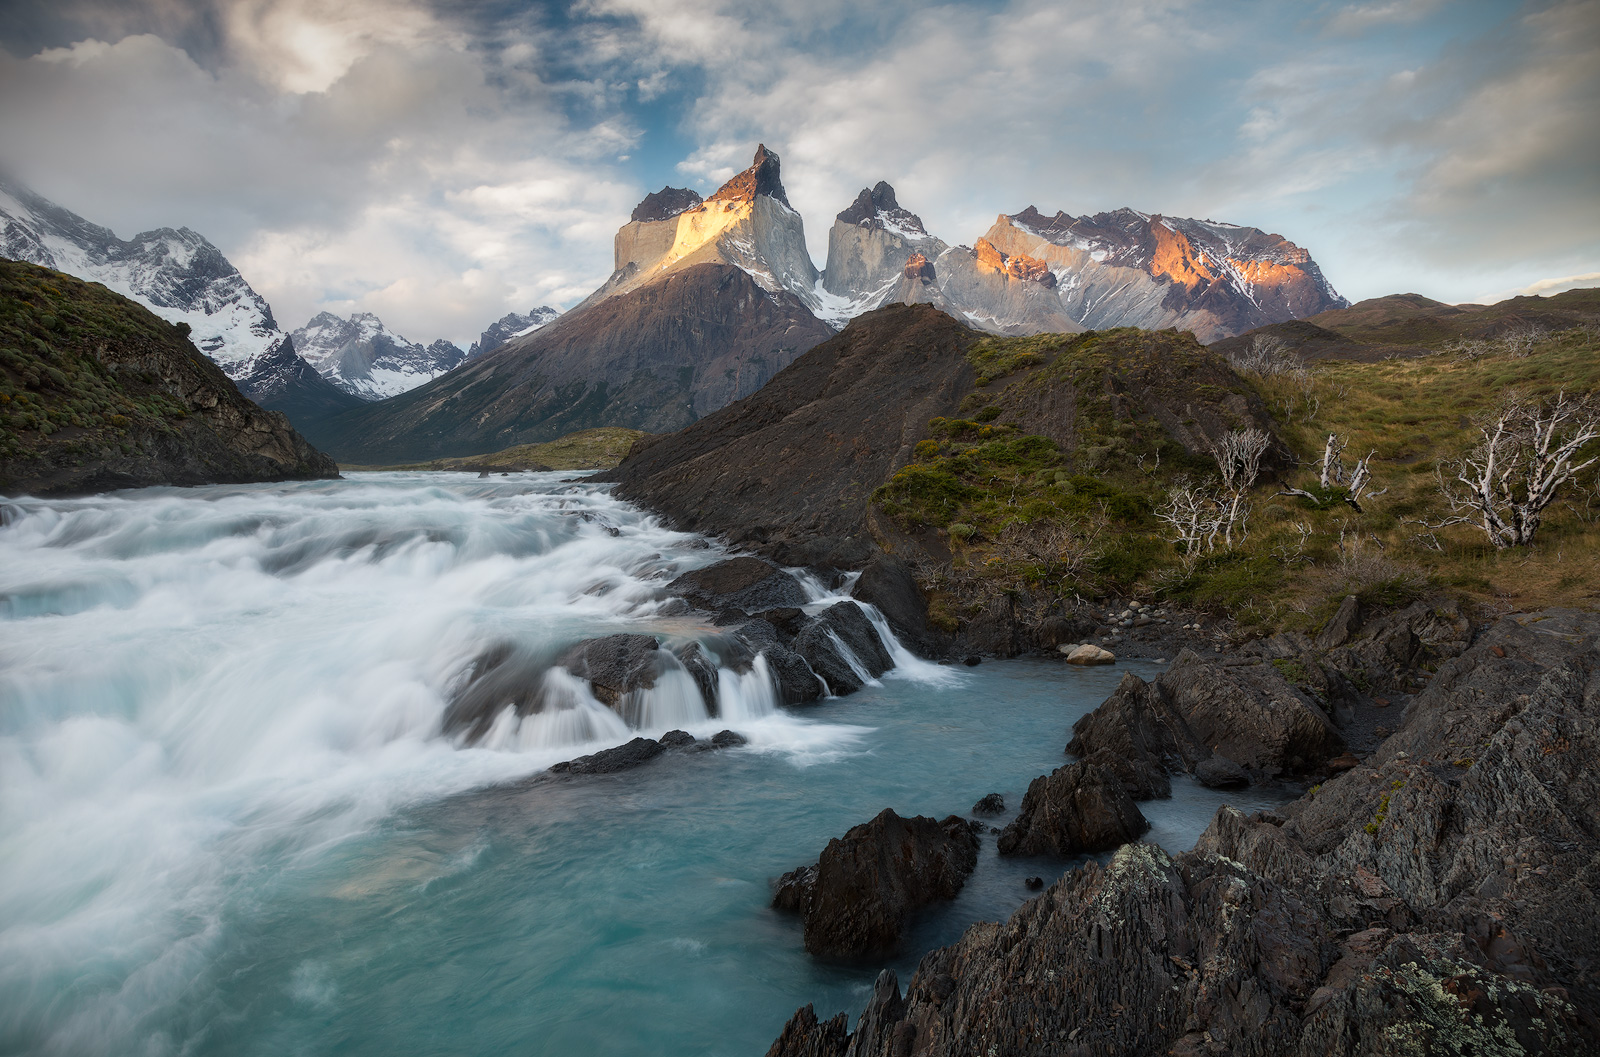 Spring, andes mountains, beautiful, cerro paine grande, chile, evening, lake, landscape, los cuernos, mountain, mountain range, patagonia, peak, salto grande, snow, south america, sunset, torres del p, photo